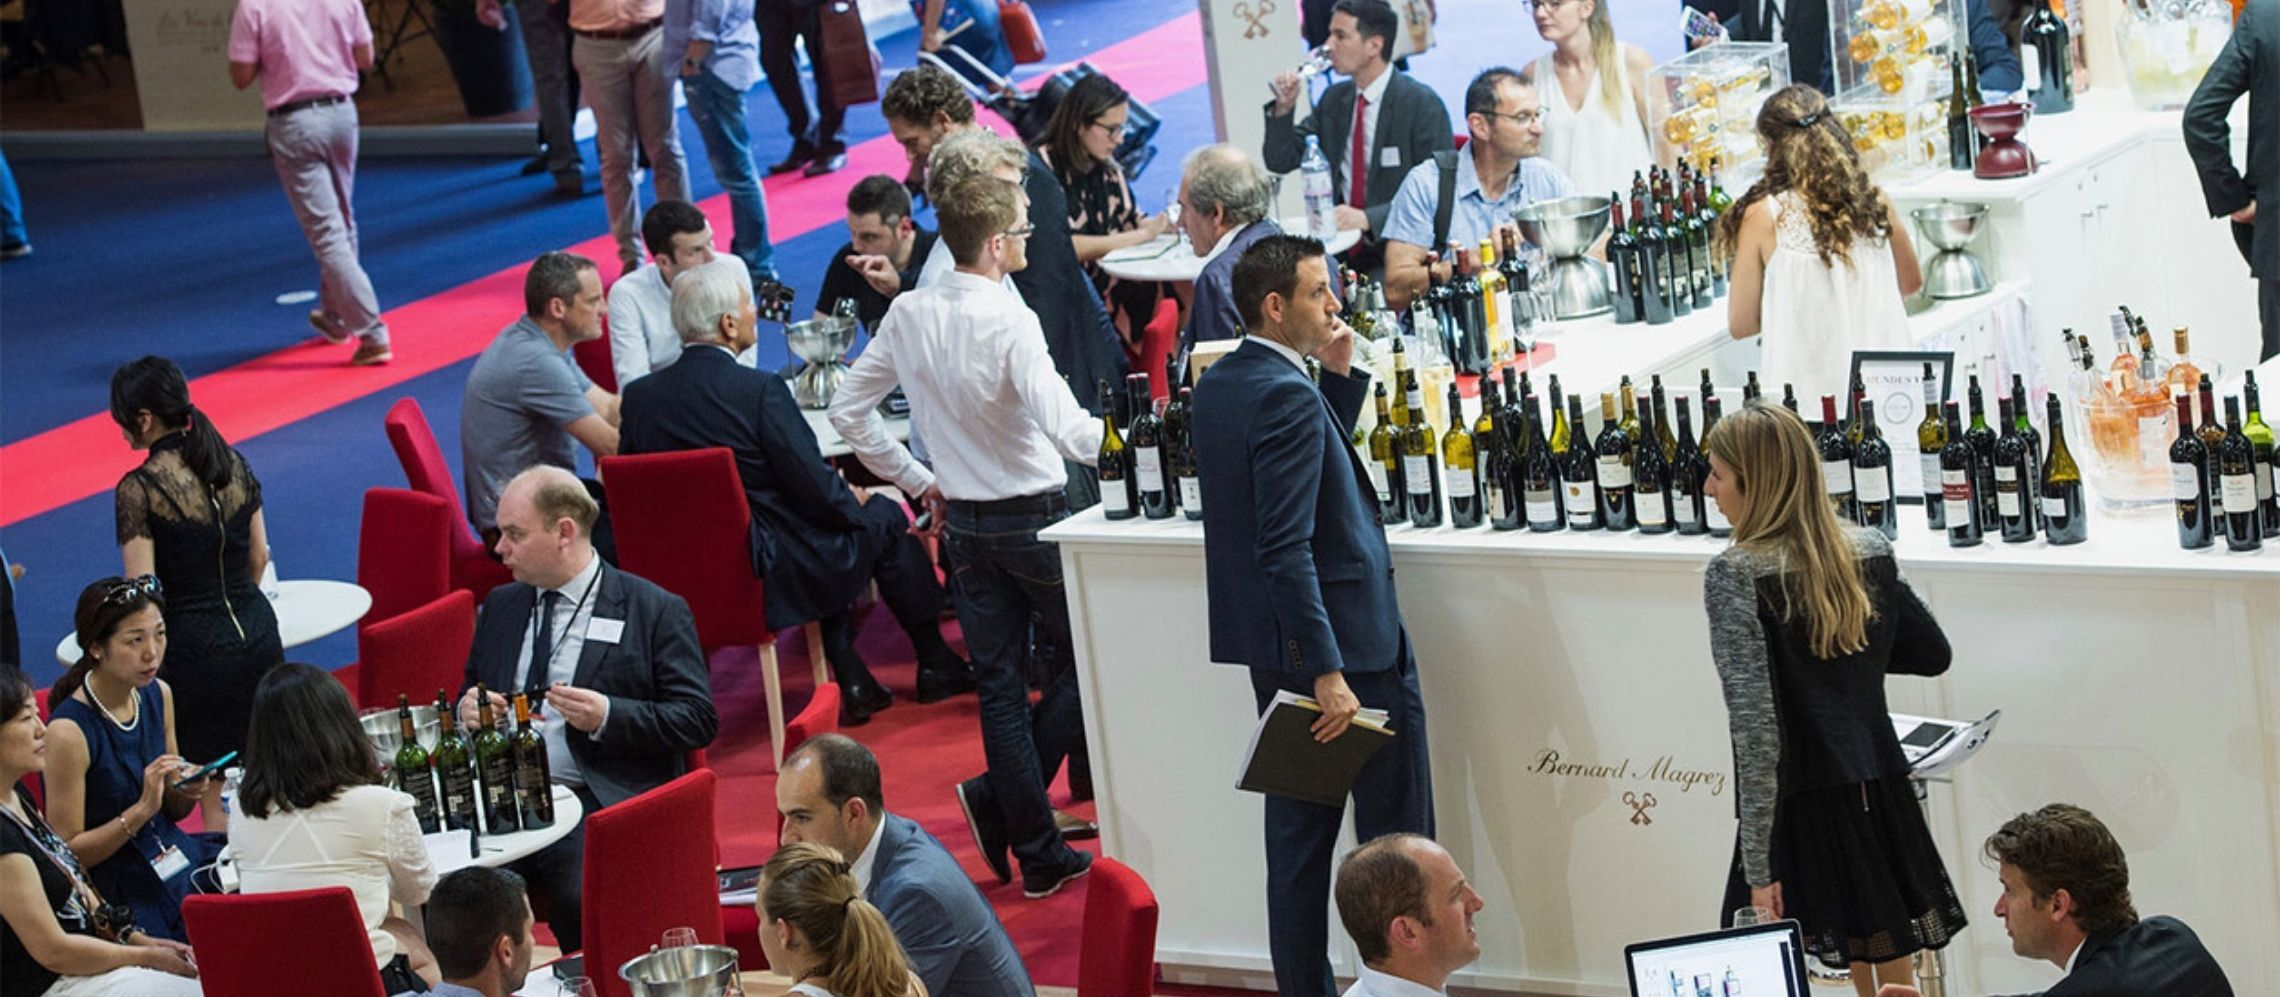 Photo for: Vinexpo Holding and Comexposium Merge To Build A Premier Wine & Spirits Business